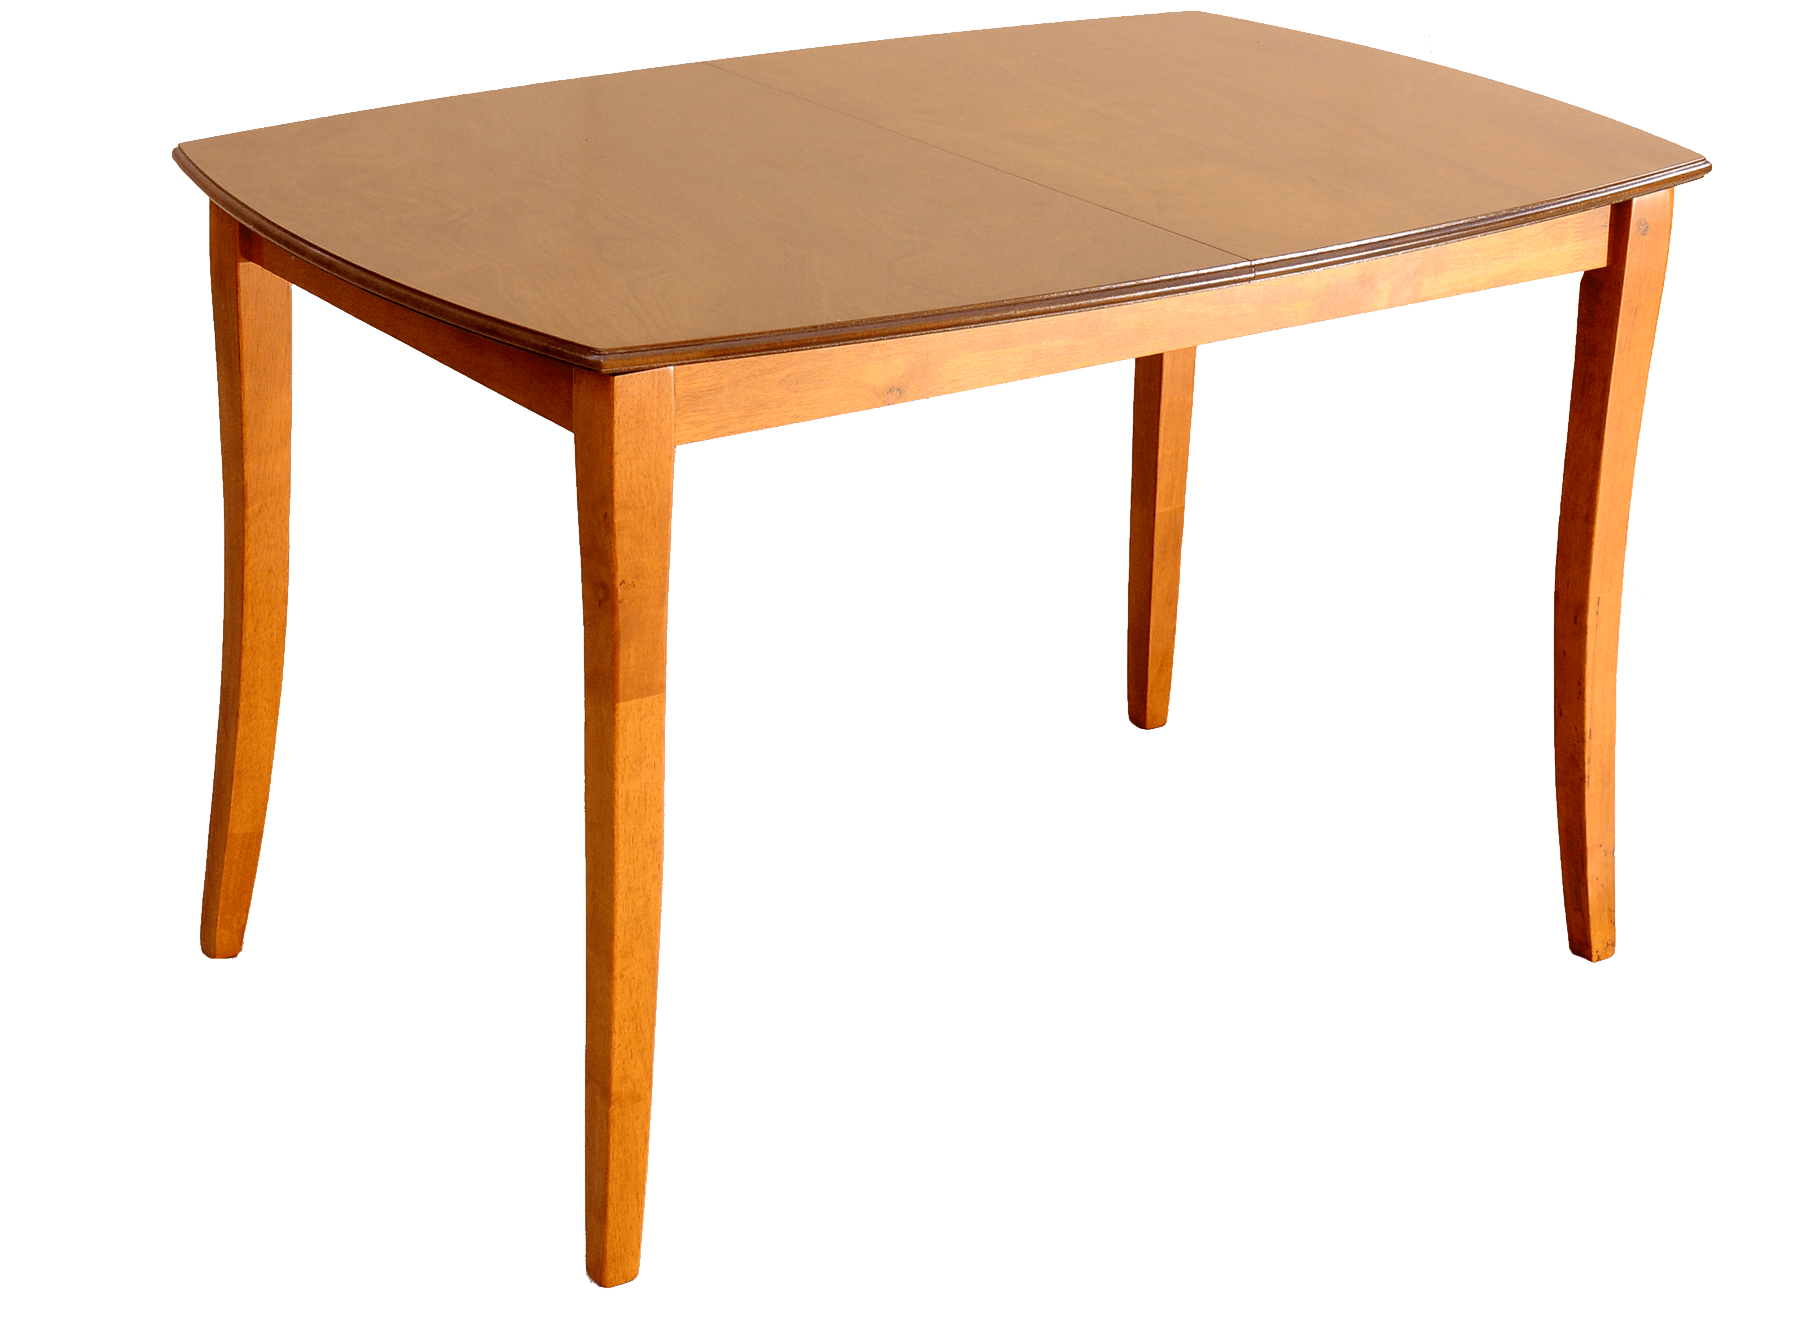 Tables PNG Images, Wooden Table PNG Clipart Download.